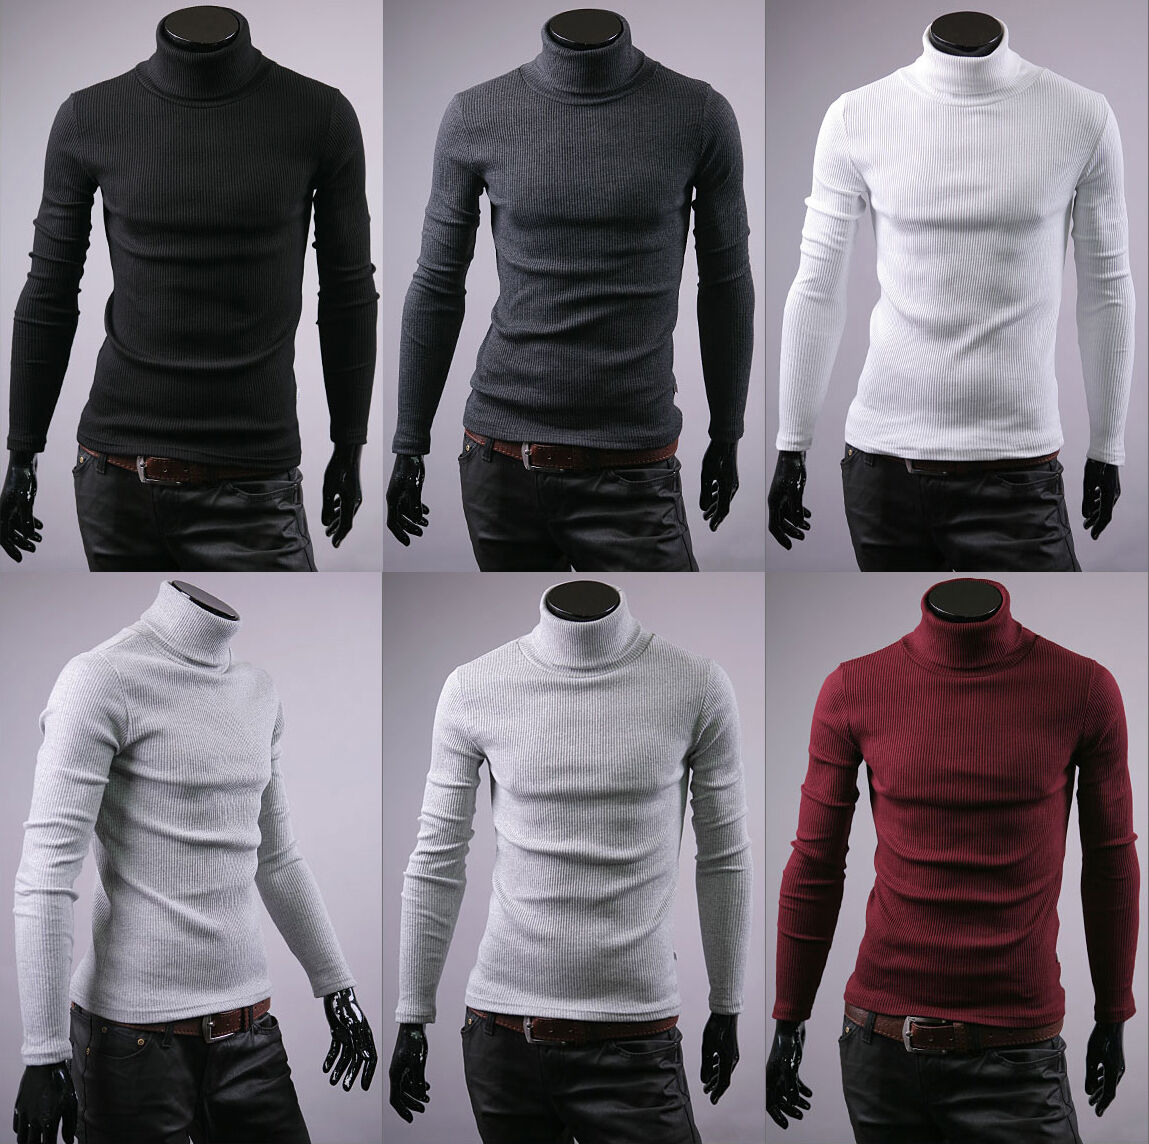 New mens cotton turtle neck polo turtleneck sweater stretch jumper us size S M L